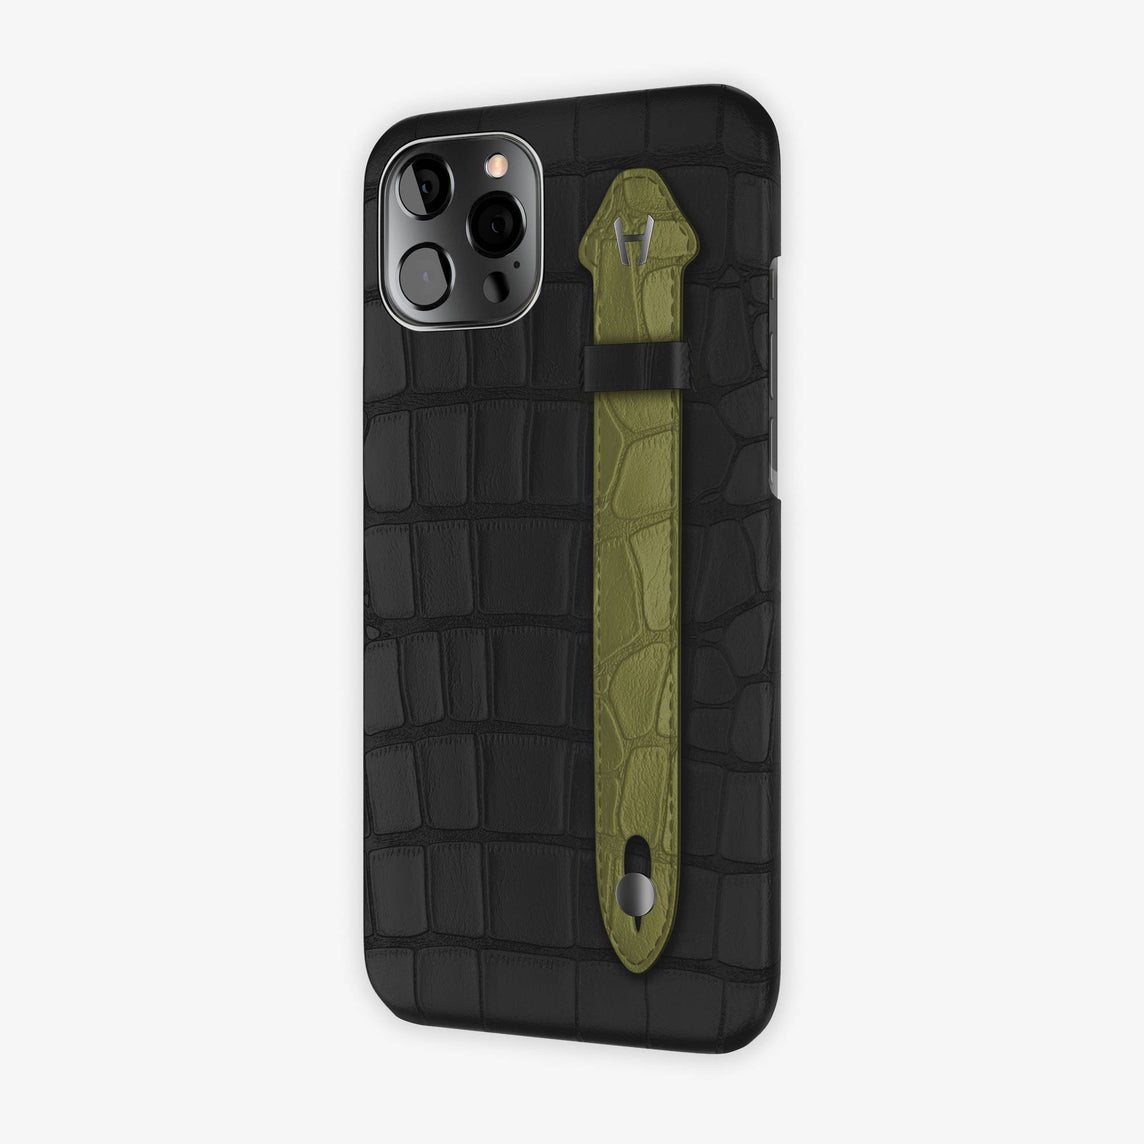 Alligator Side Finger Case iPhone 12 Pro Max | Black/Khaki - Black